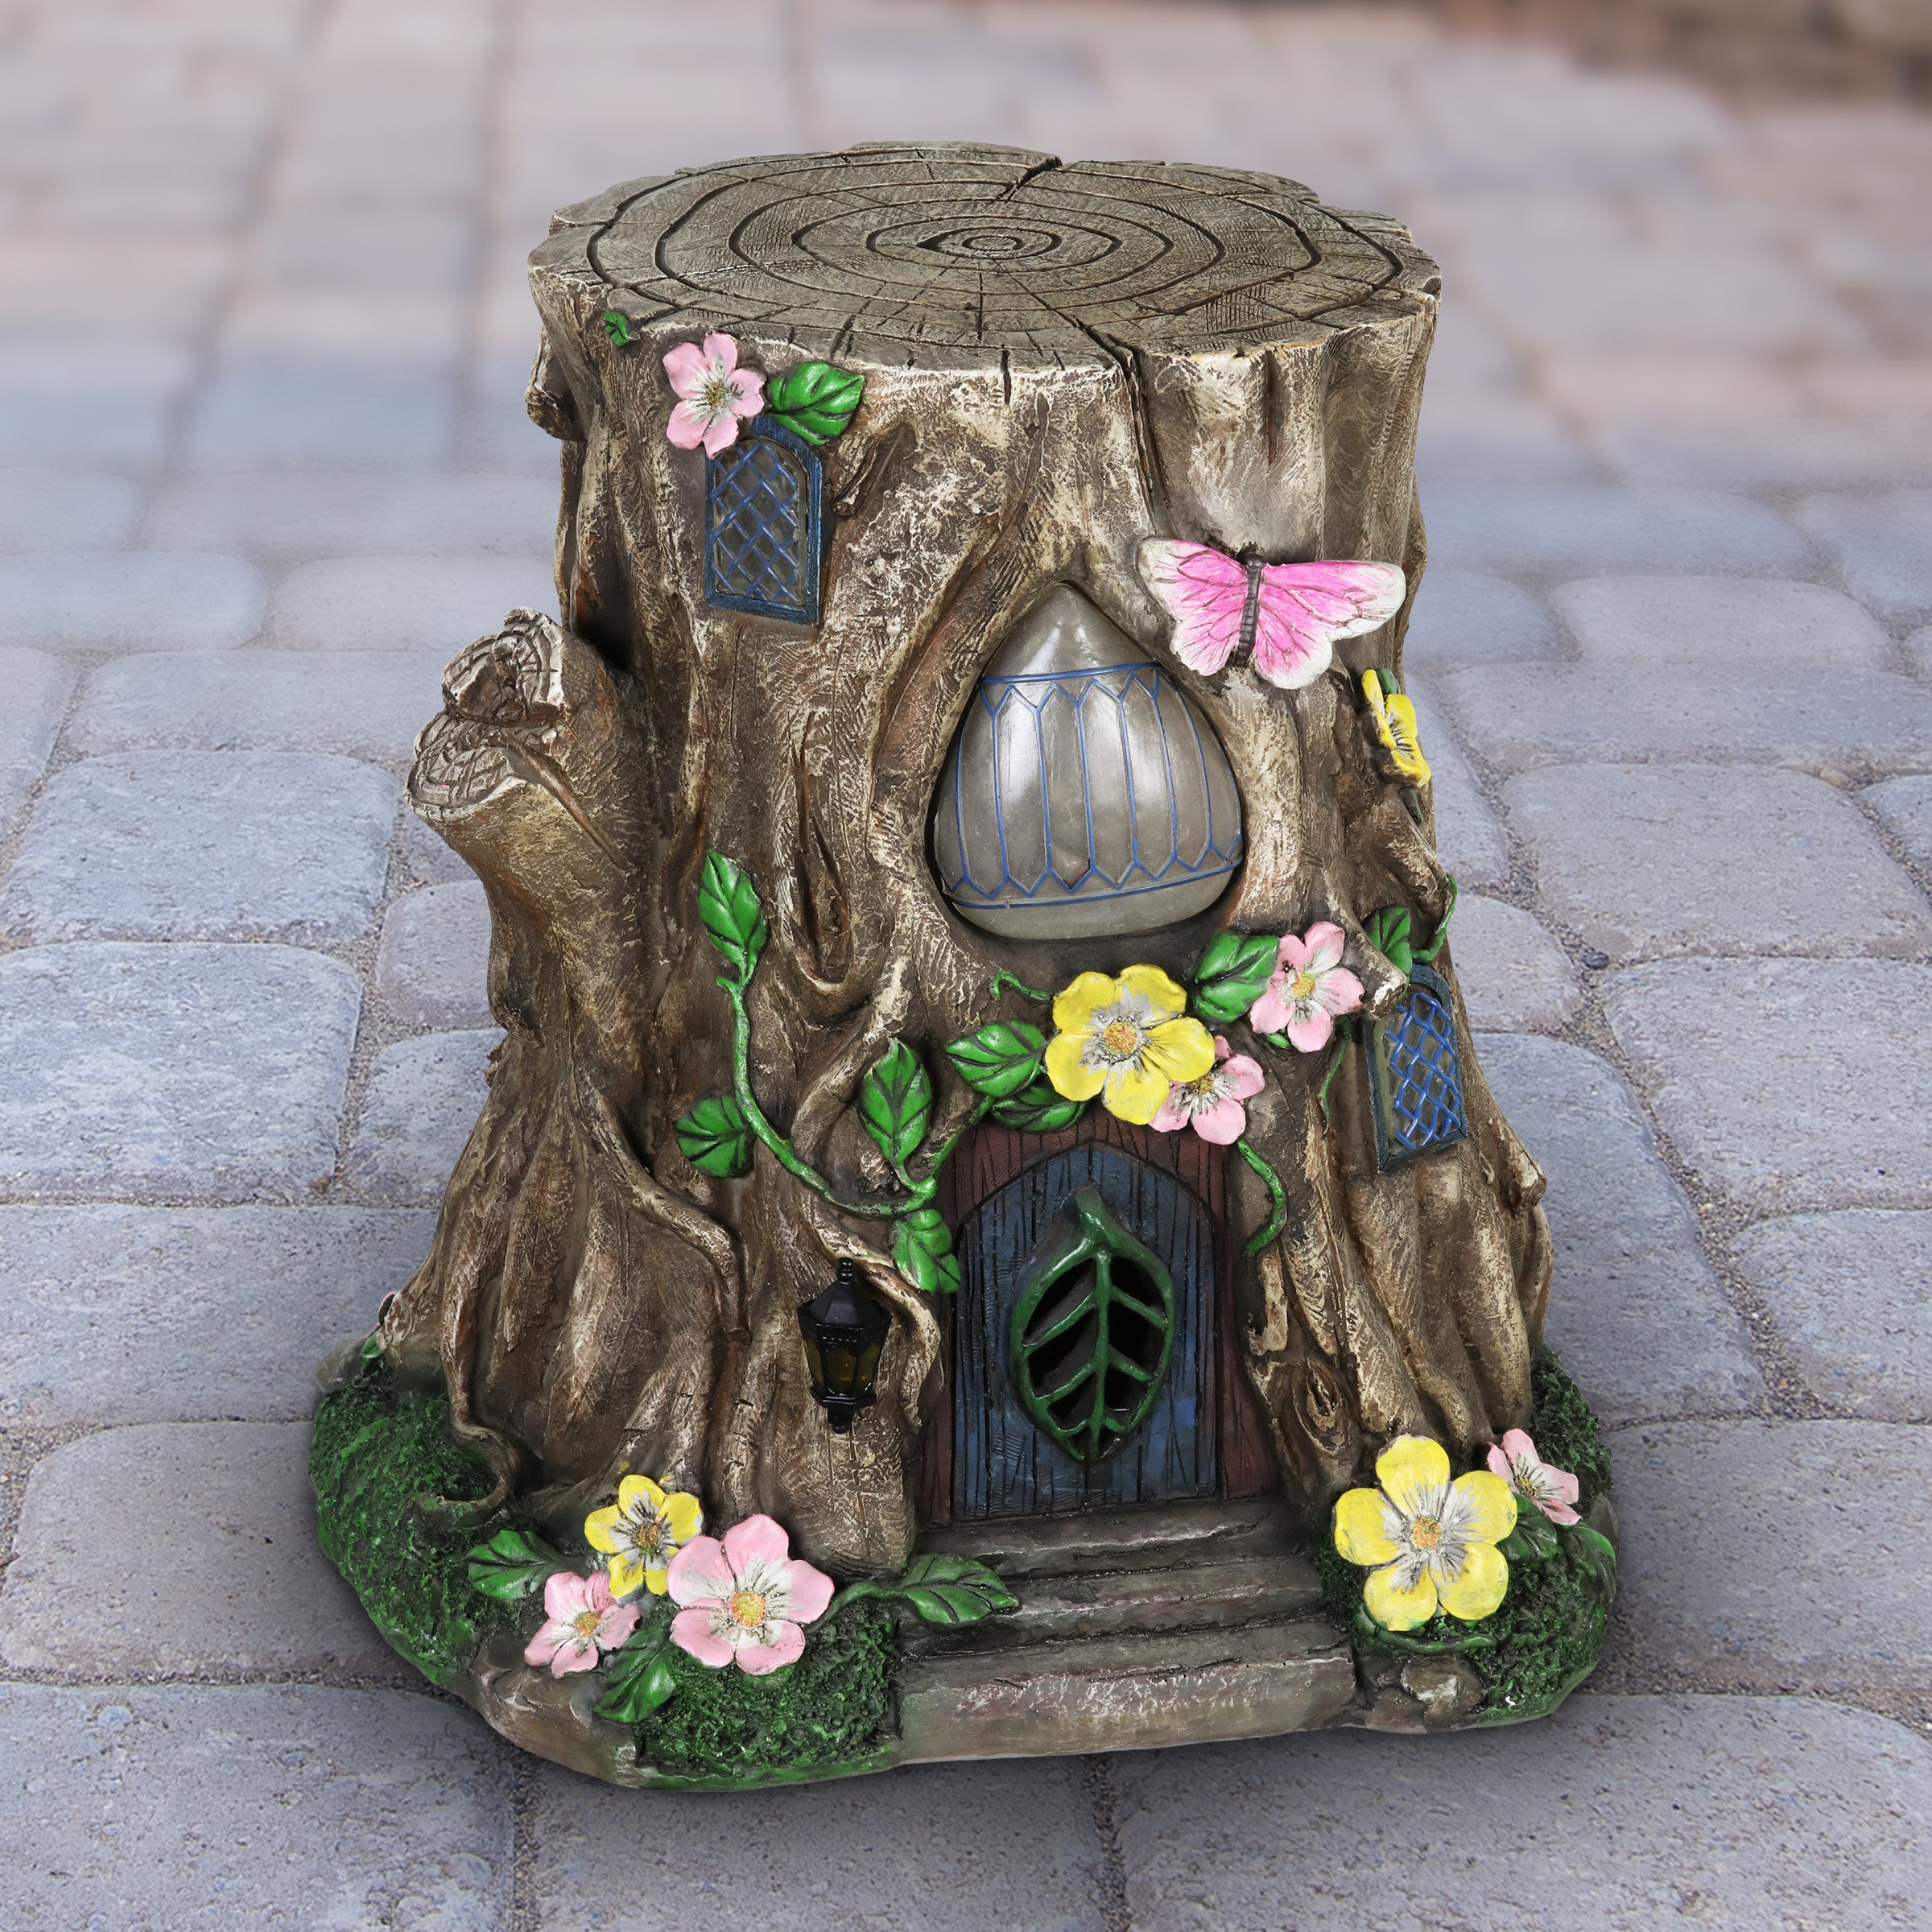 Exhart Gardening Gifts –Fairy House Tree Stump Statue - Large Garden Statues w/Solar Garden Lights, Outdoor Use, Fairy Themed Garden Décor, Weather Resistant Resin Statues by Exhart (Image #3)